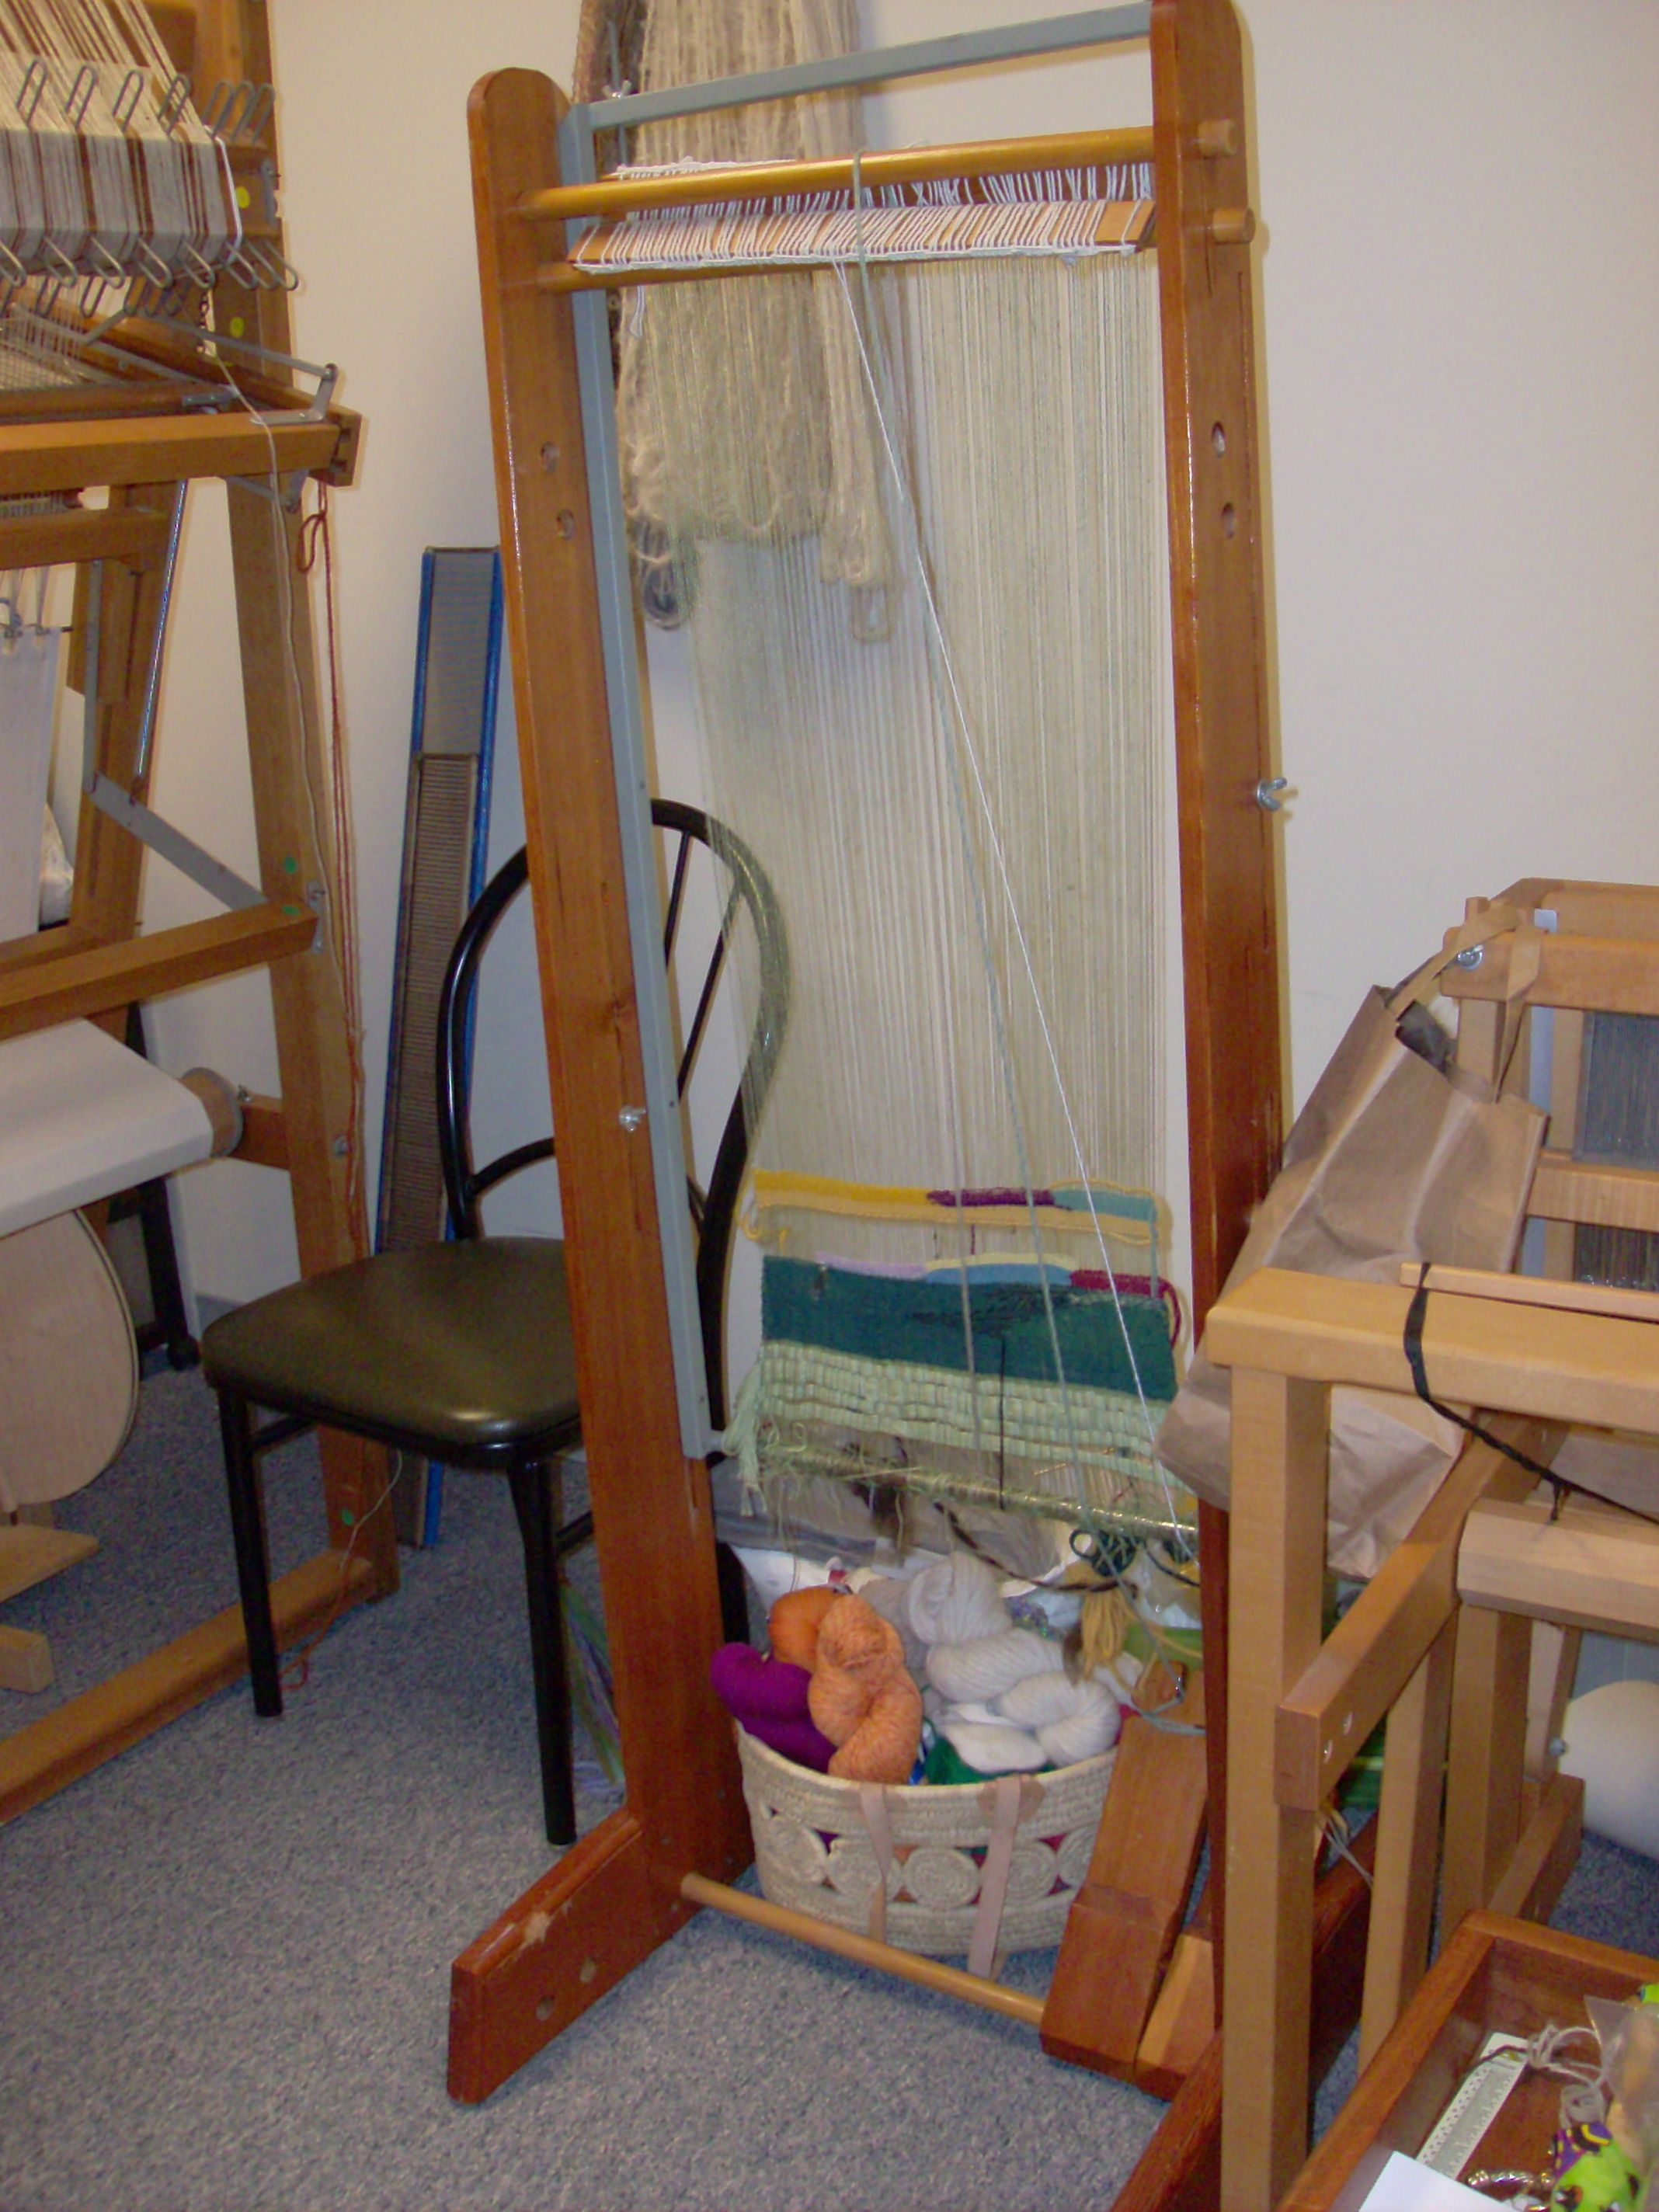 upright 2 harness tapestry loom for sale in VA | River City Weaves